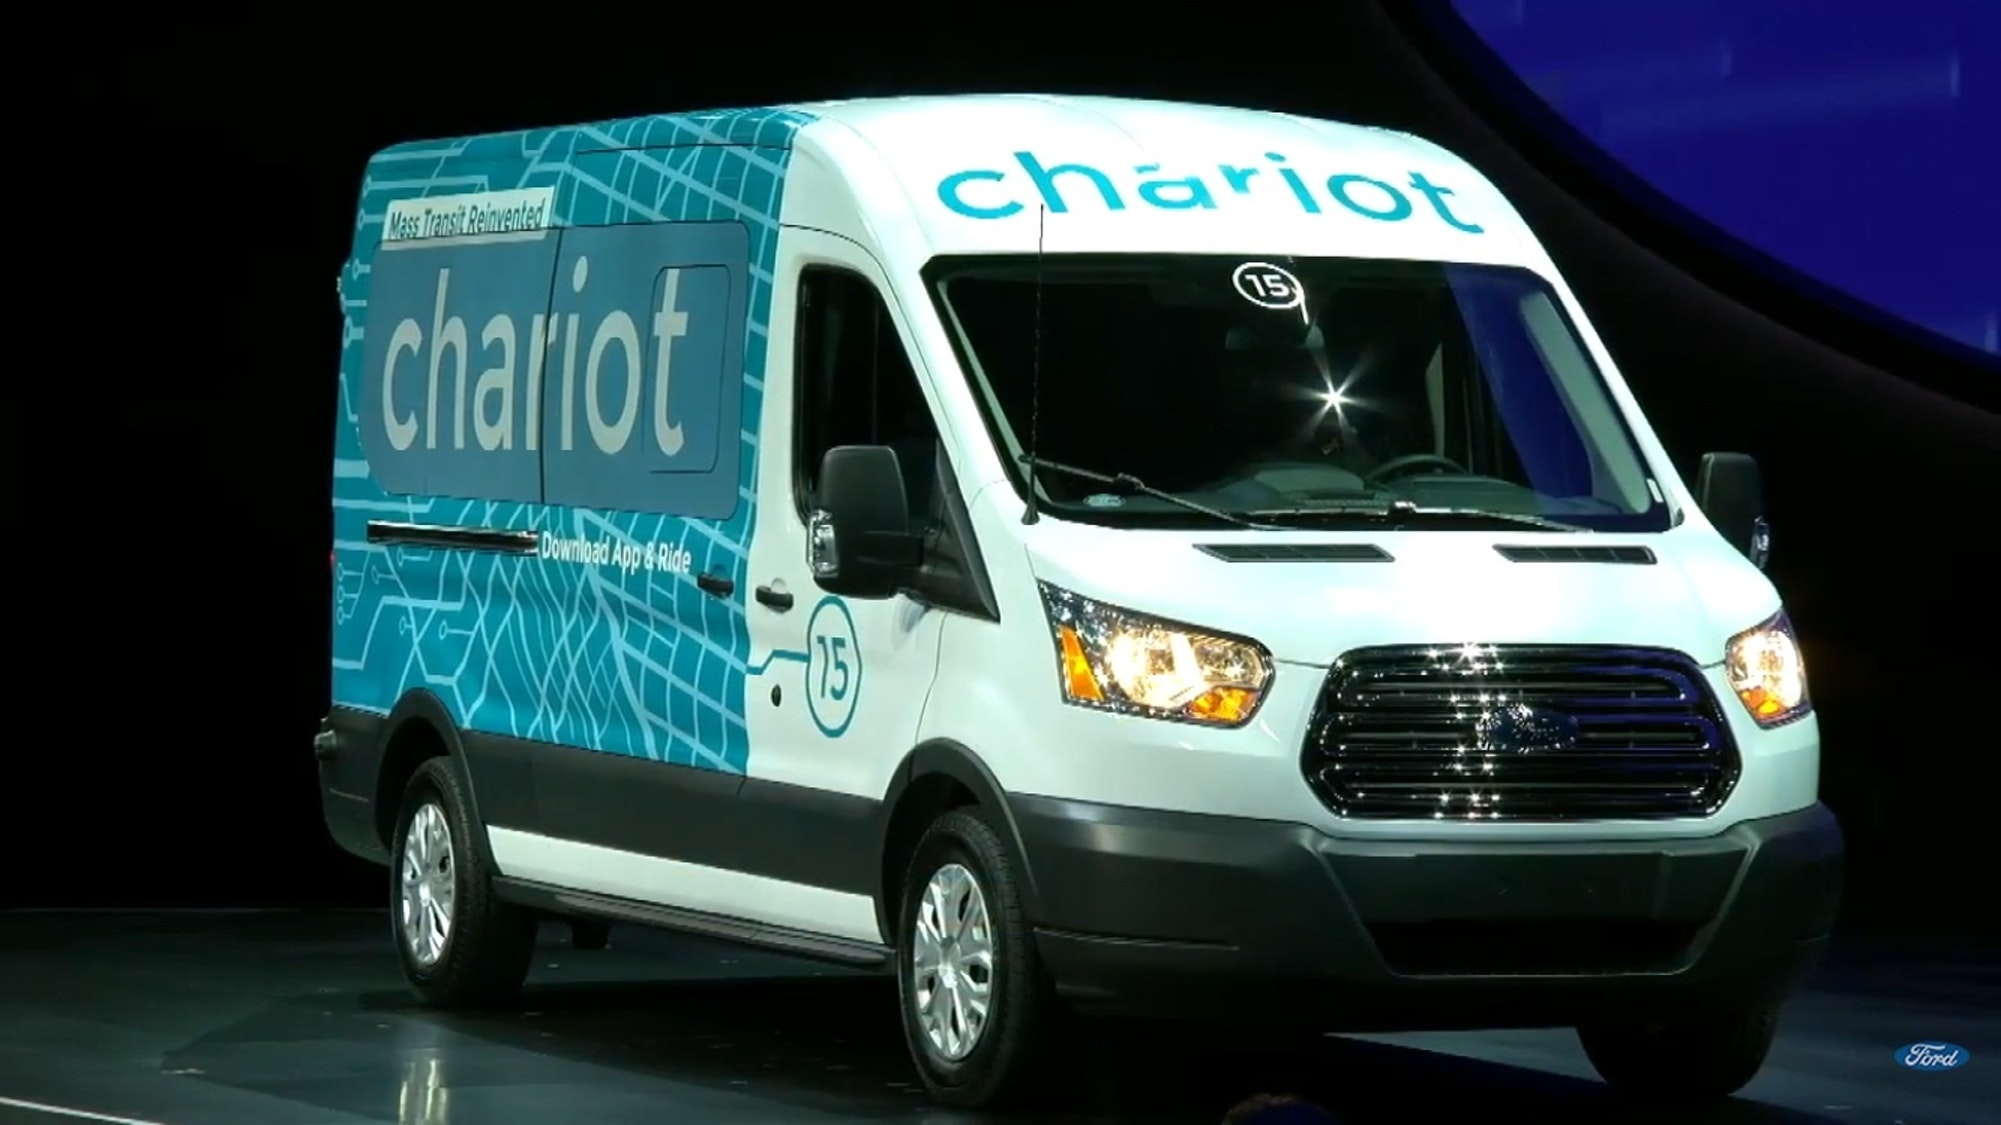 A Chariot transit van rolls onto the stage at Joe Louis Arena on Monday.